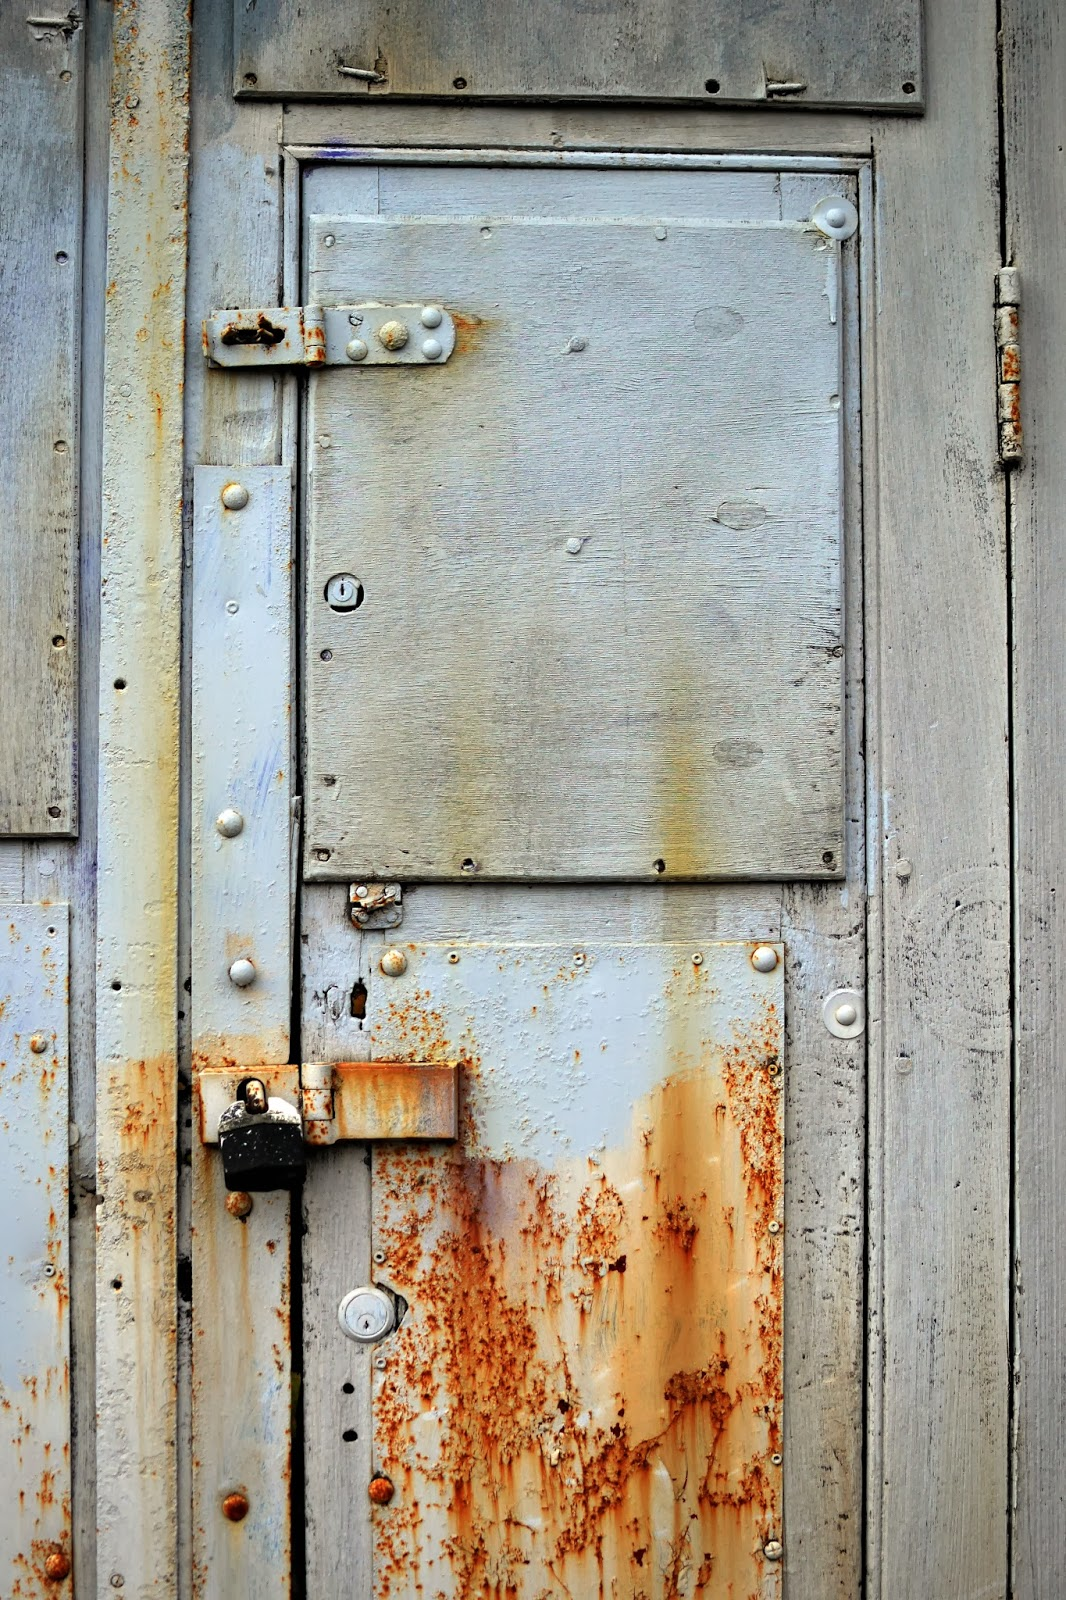 Details, exploring city, close up photography, manchester, urbex, ephemera, urban narrative, rusty door